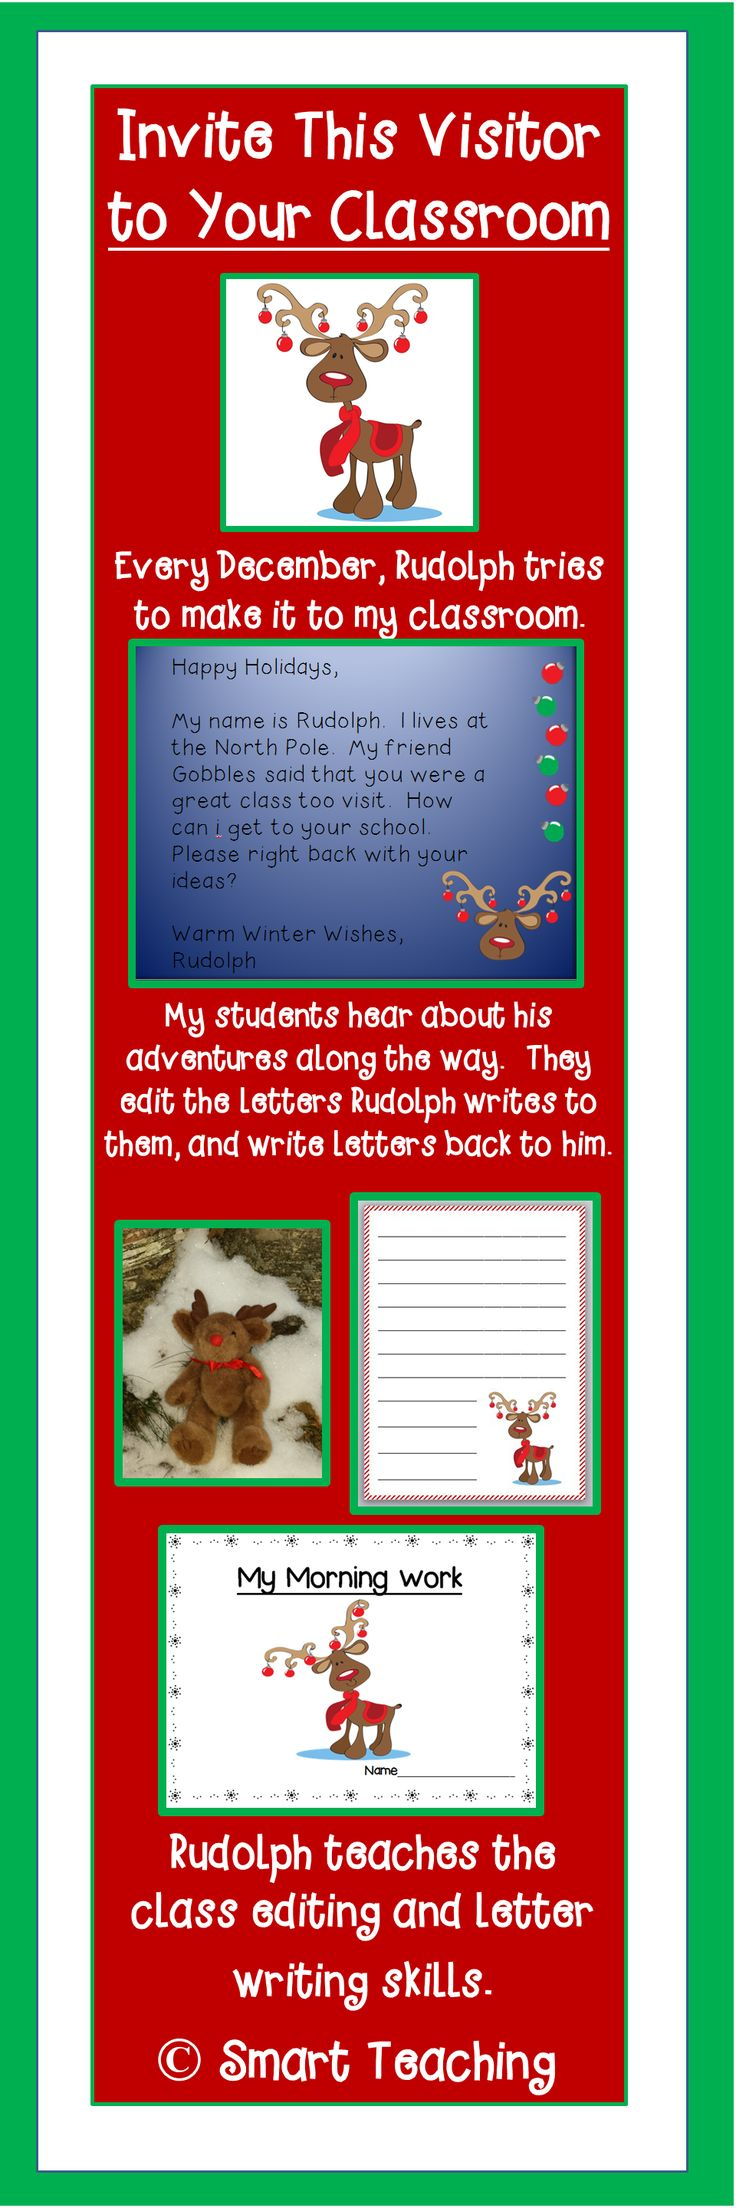 Can Rudolph visit your classroom? He is a writing challenged reindeer who is trying to make his way to you before Christmas. He teaches editing and letter writing skills to your students with daily letters to the children. Your students edit his messages, and write letters back to him. This is the perfect morning work! $